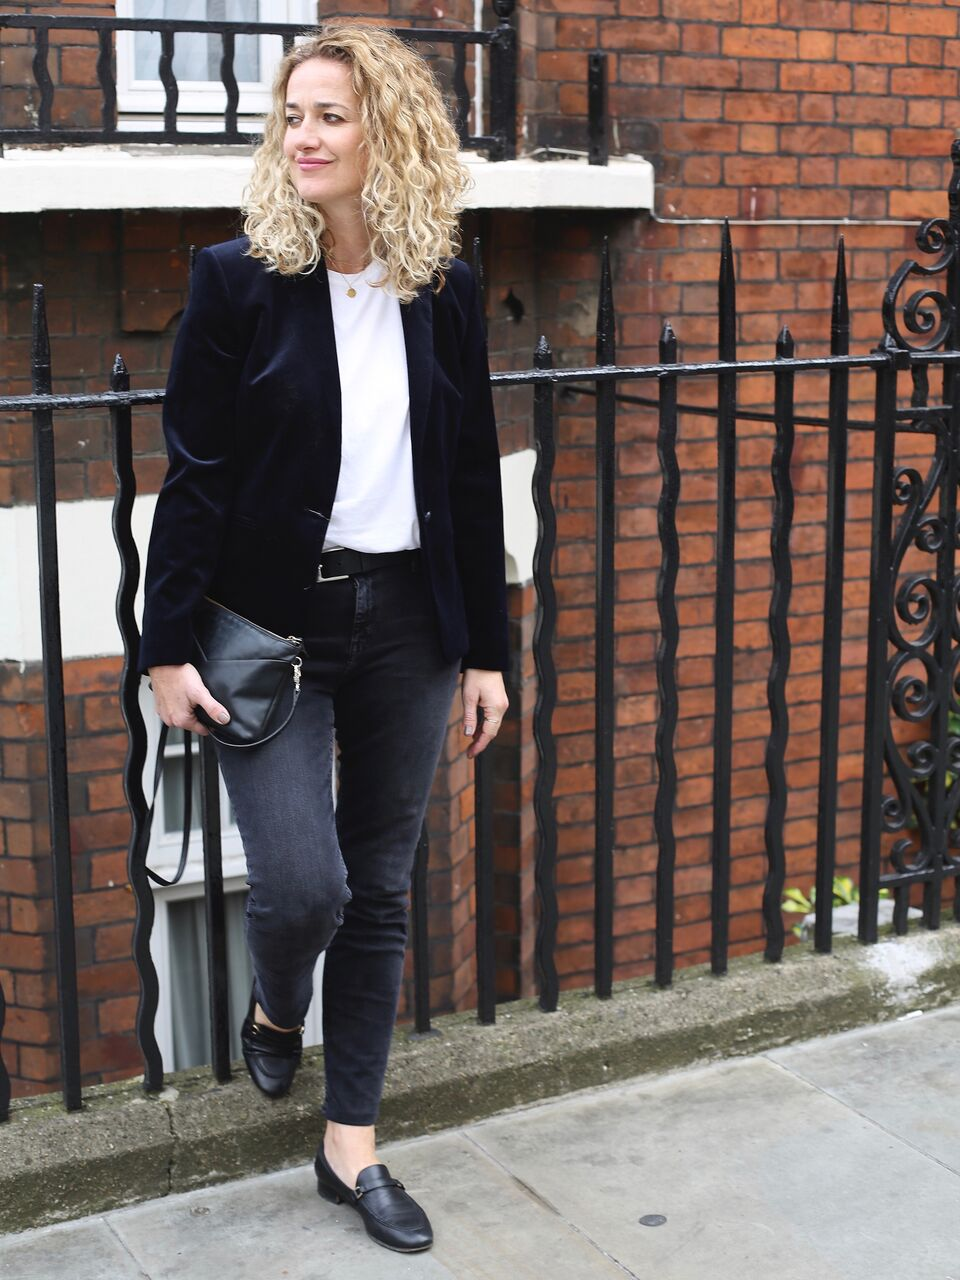 THE GROWN UP EDIT - Blazer Street Style